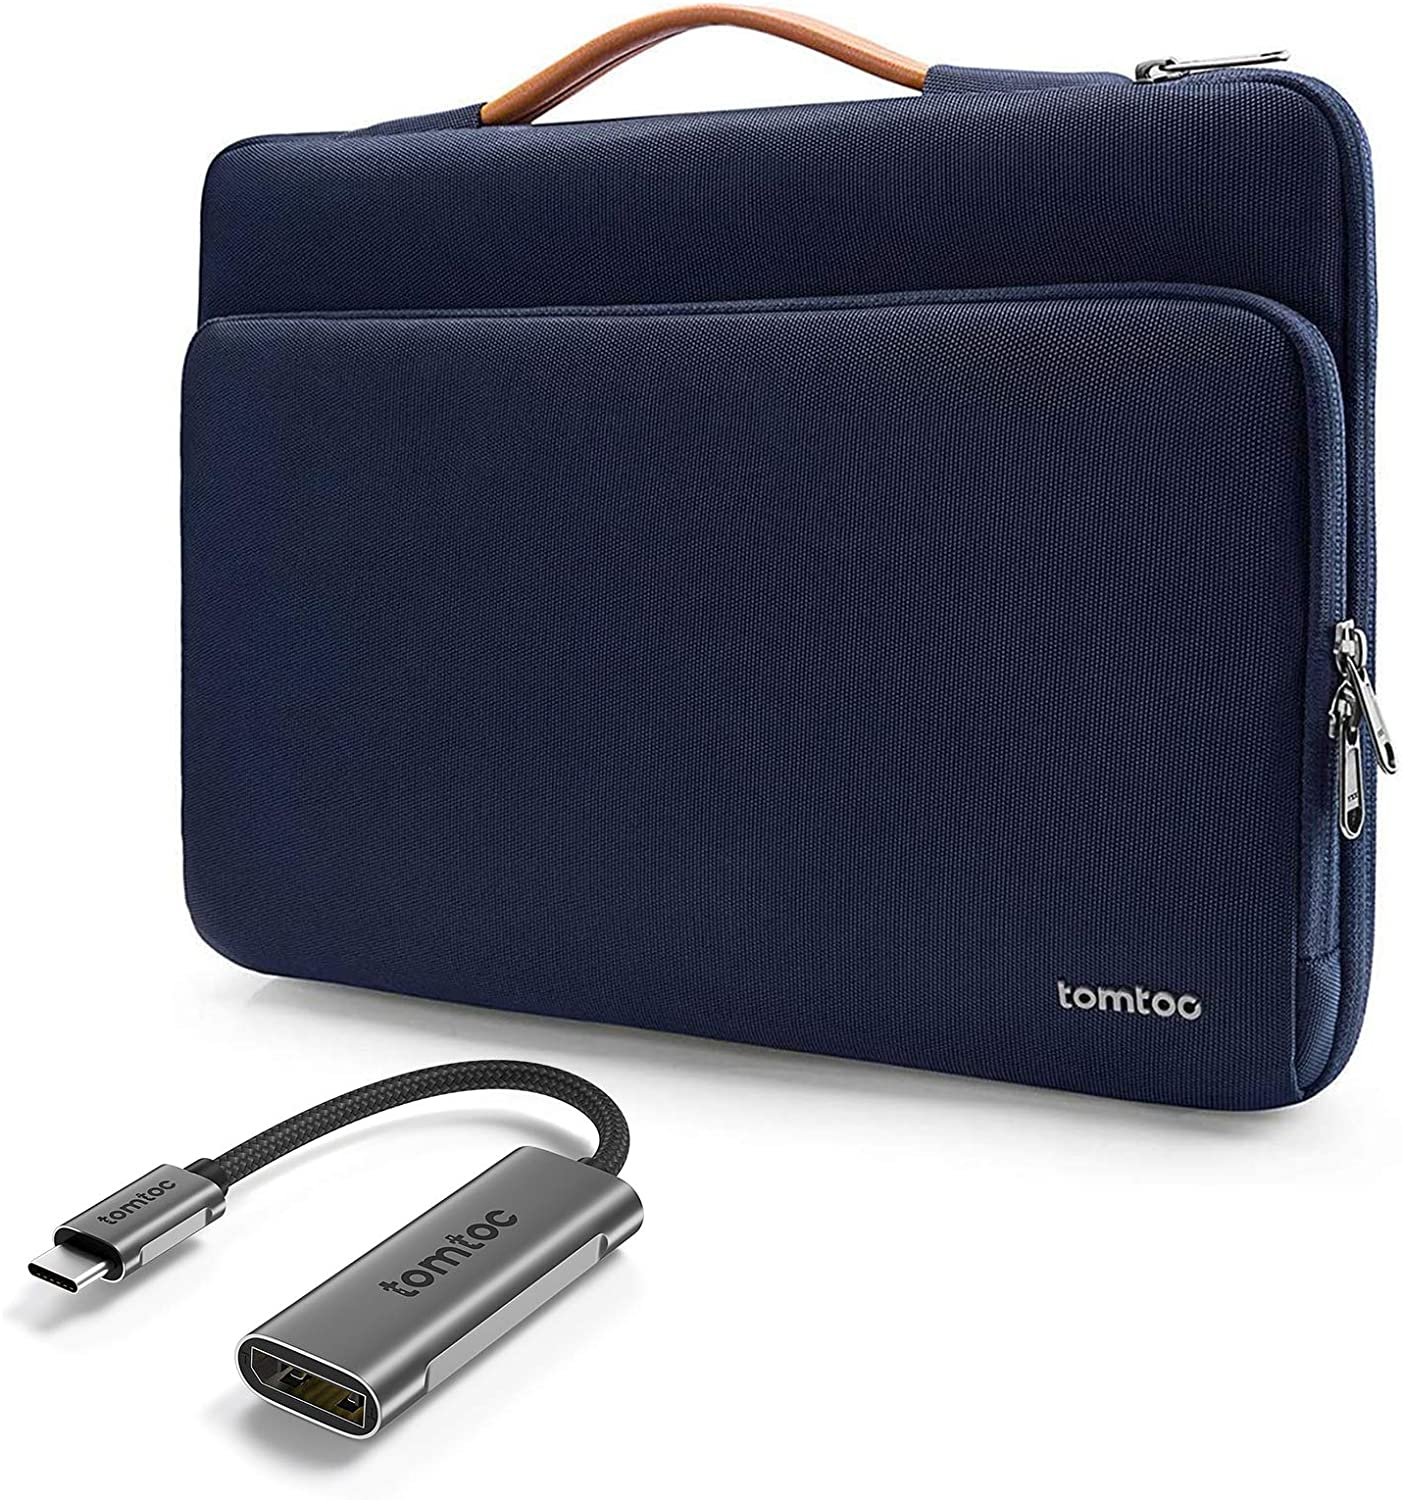 tomtoc 360 Protective Laptop Carrying Case with USB-C to DisplayPort 1.4 Adapter 4K 60/120Hz for 13-inch MacBook Pro, MacBook Air with Retina Display, 12.9-inch iPad, Dell XPS 13, Surface ProX/7/6/5/4